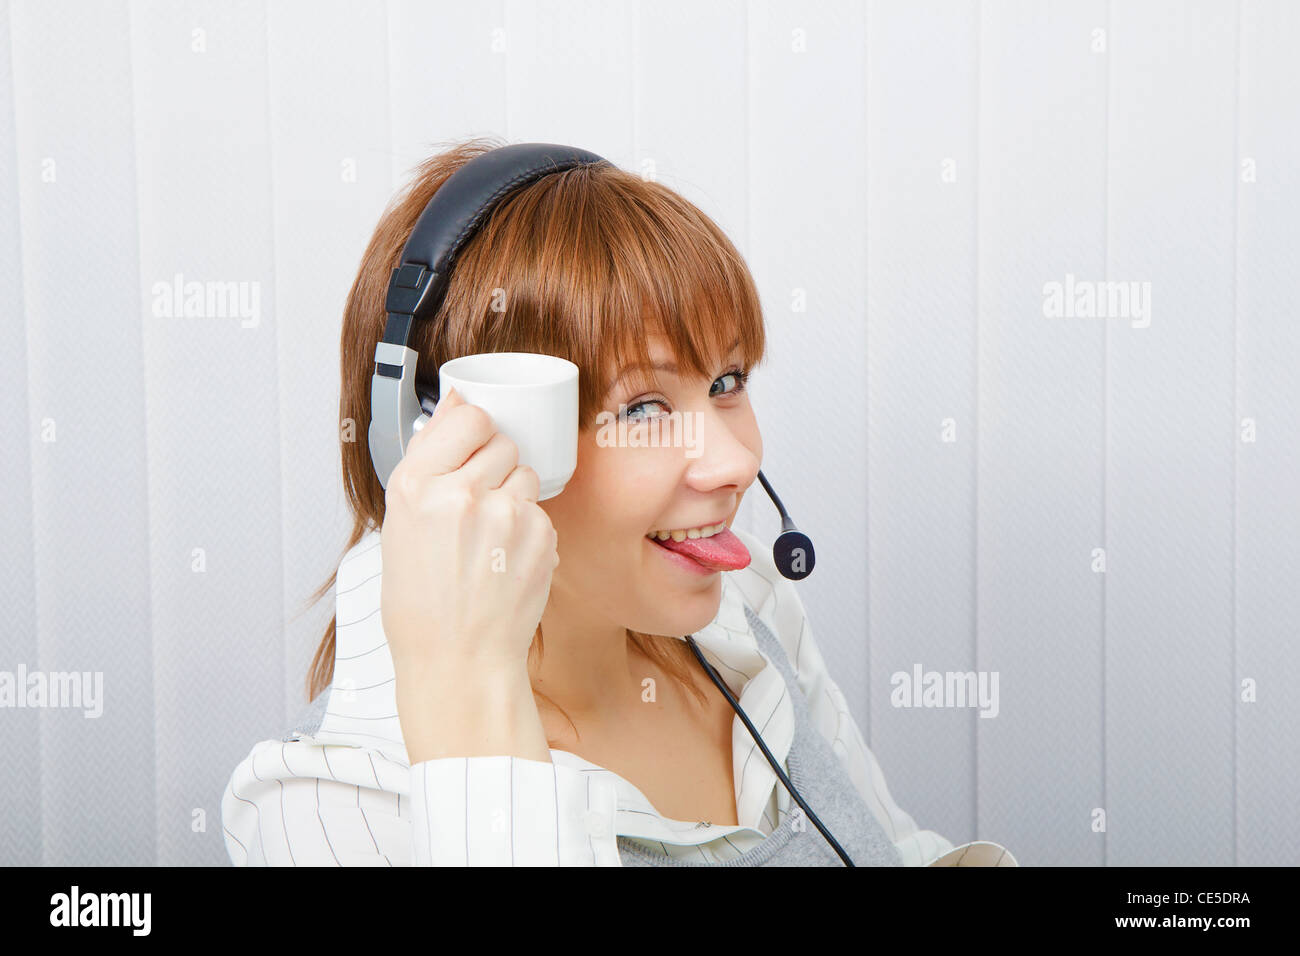 Operator on-line service. Girl in a playful mood Stock Photo